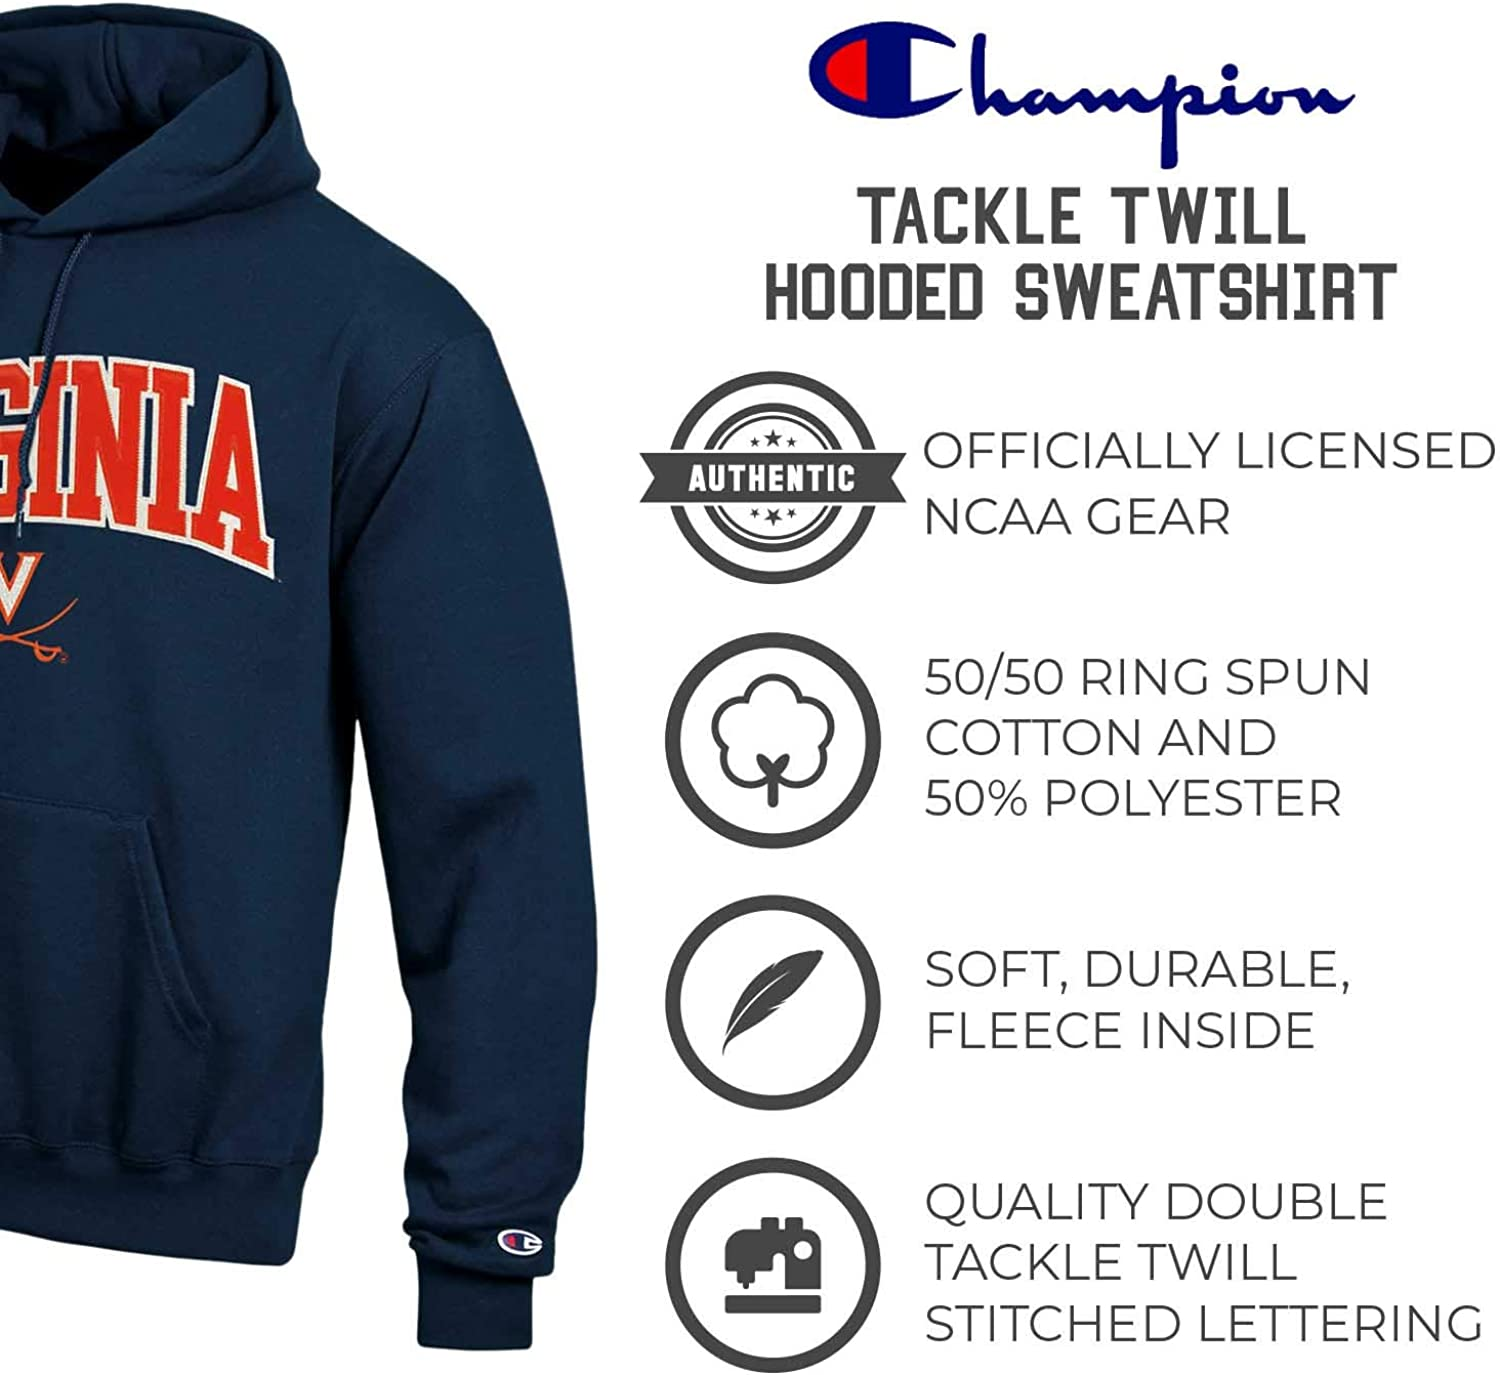 Officially Licensed Unisex NCAA Team Apparel Champion Adult Tackle ...